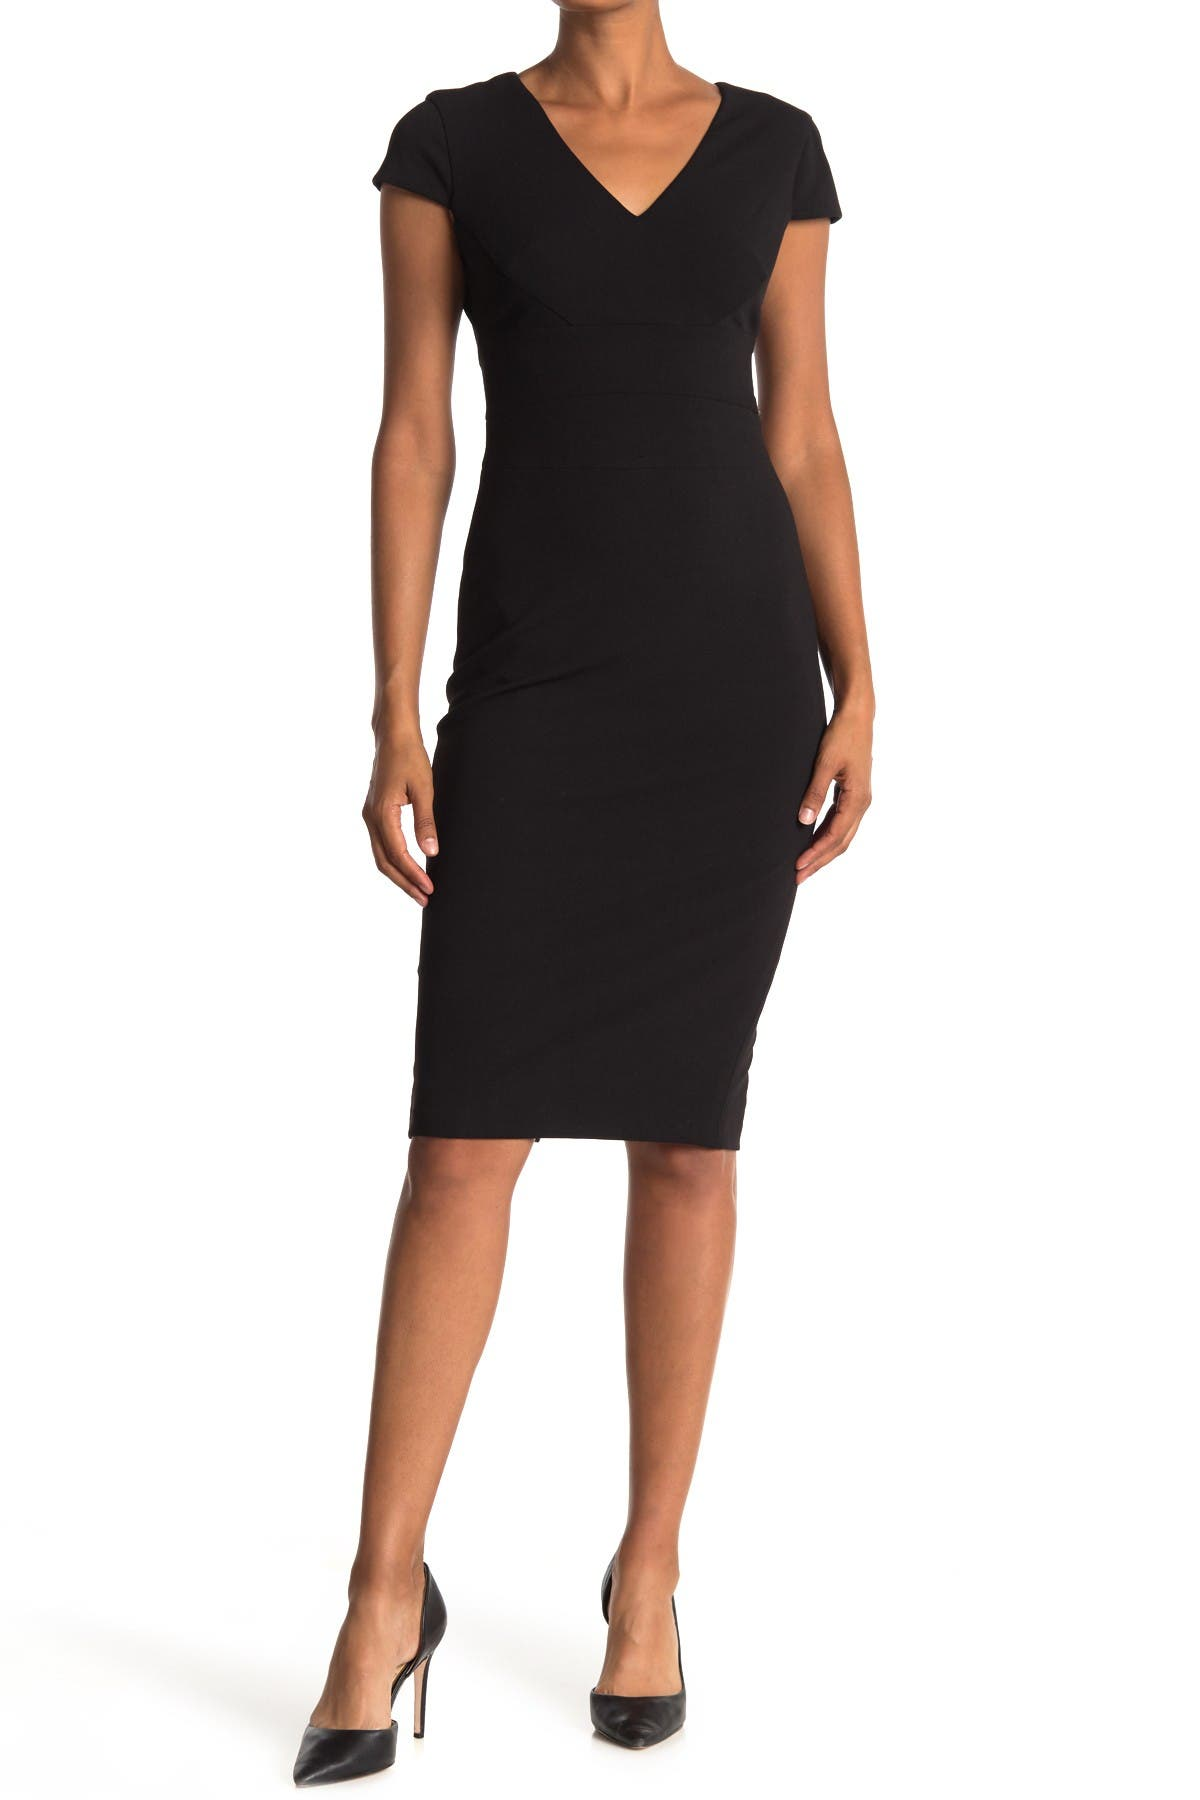 Image of Donna Morgan Cap Sleeve Fitted Crepe Dress